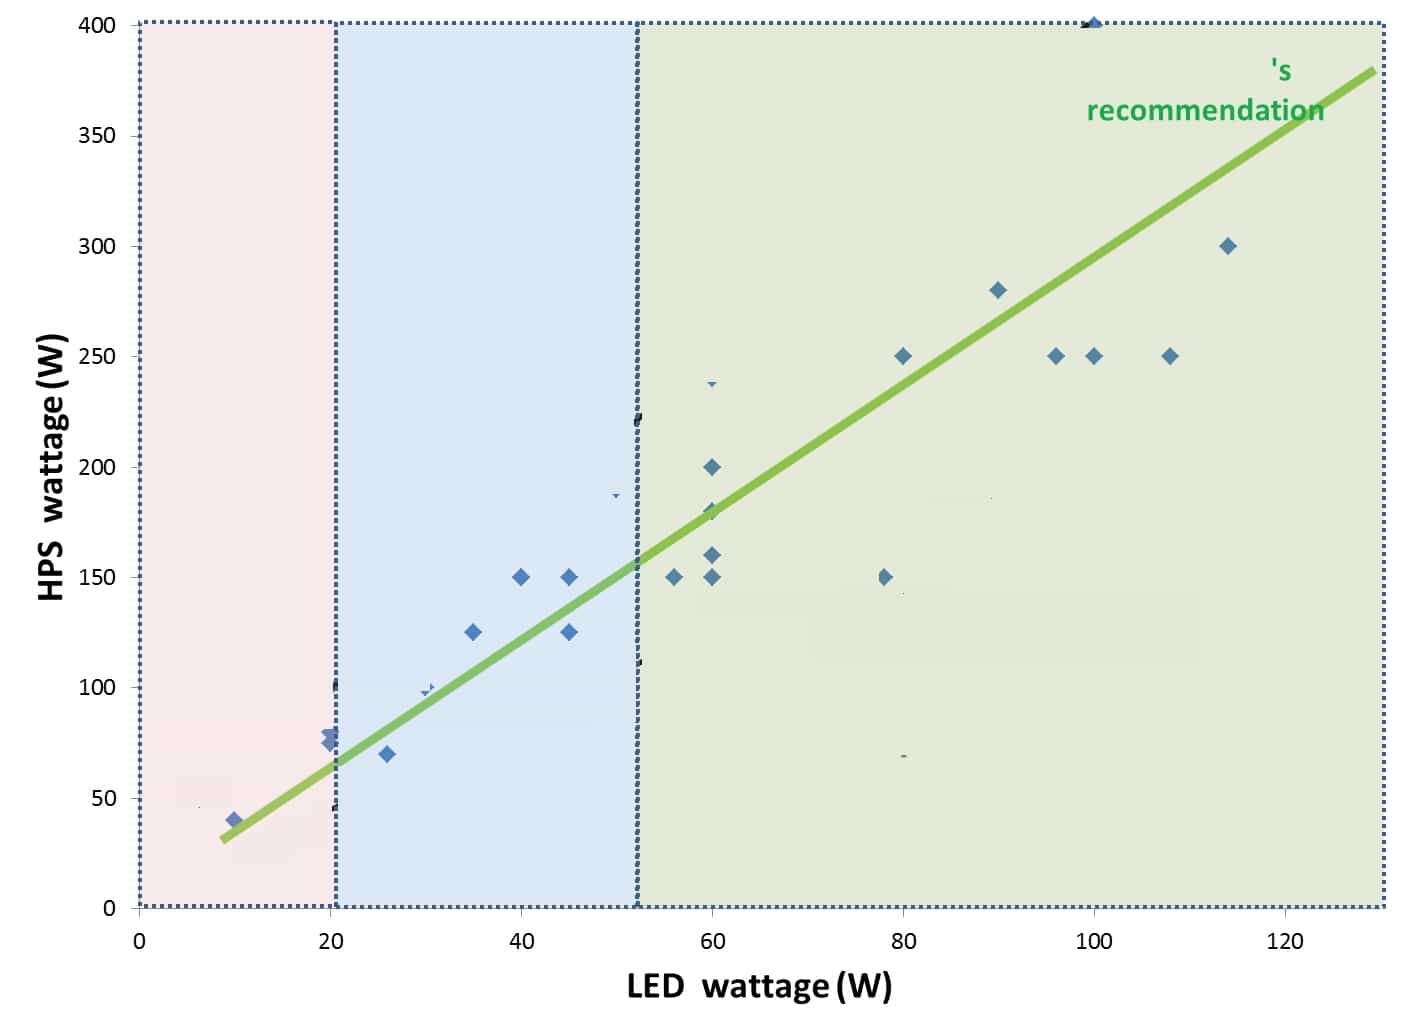 Led-wattage Comparison between Solar LED light and Conventional light